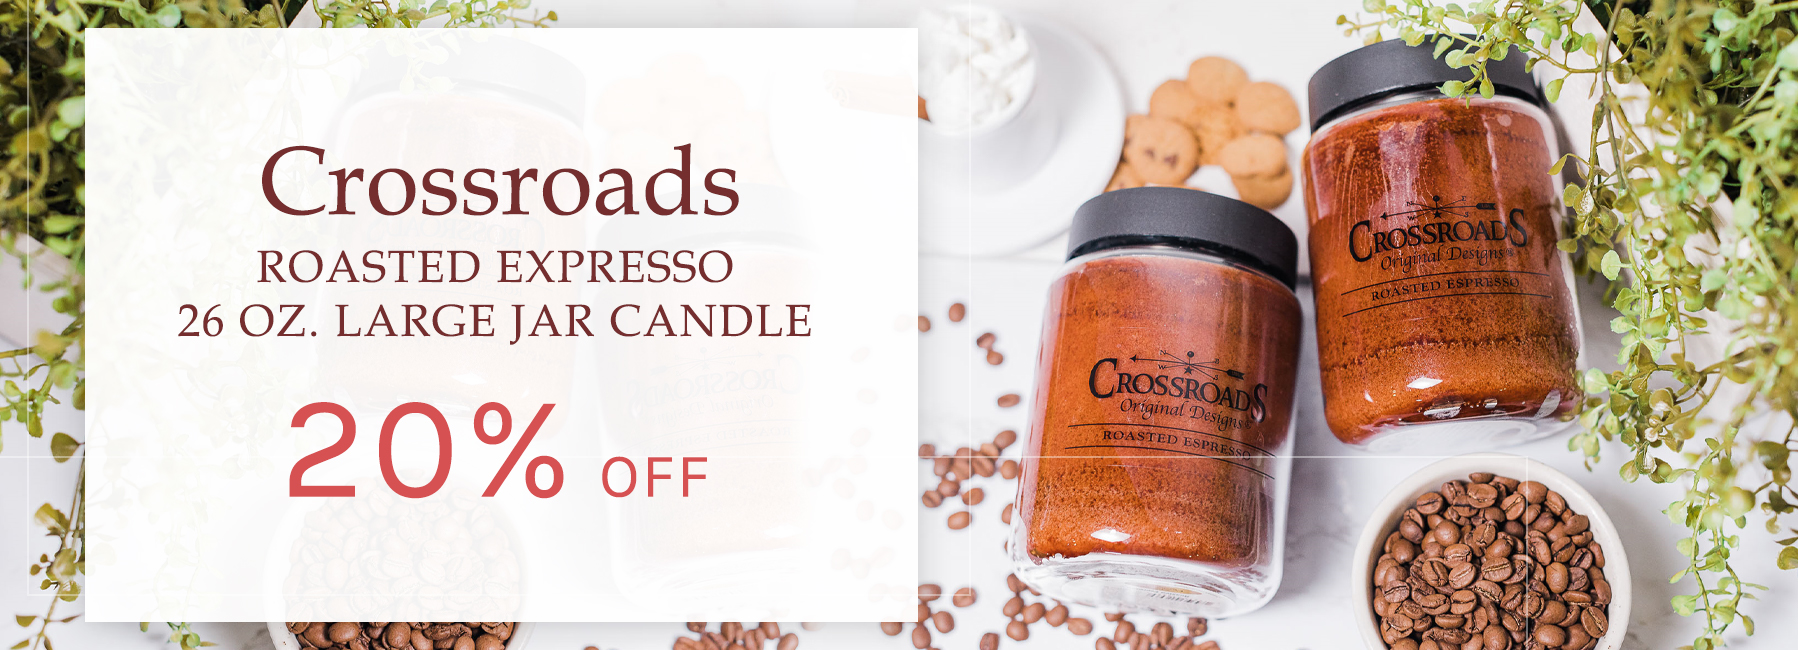 Crossroads - Roasted Expresso 26 oz. Large Candle - 25 Percent OFF